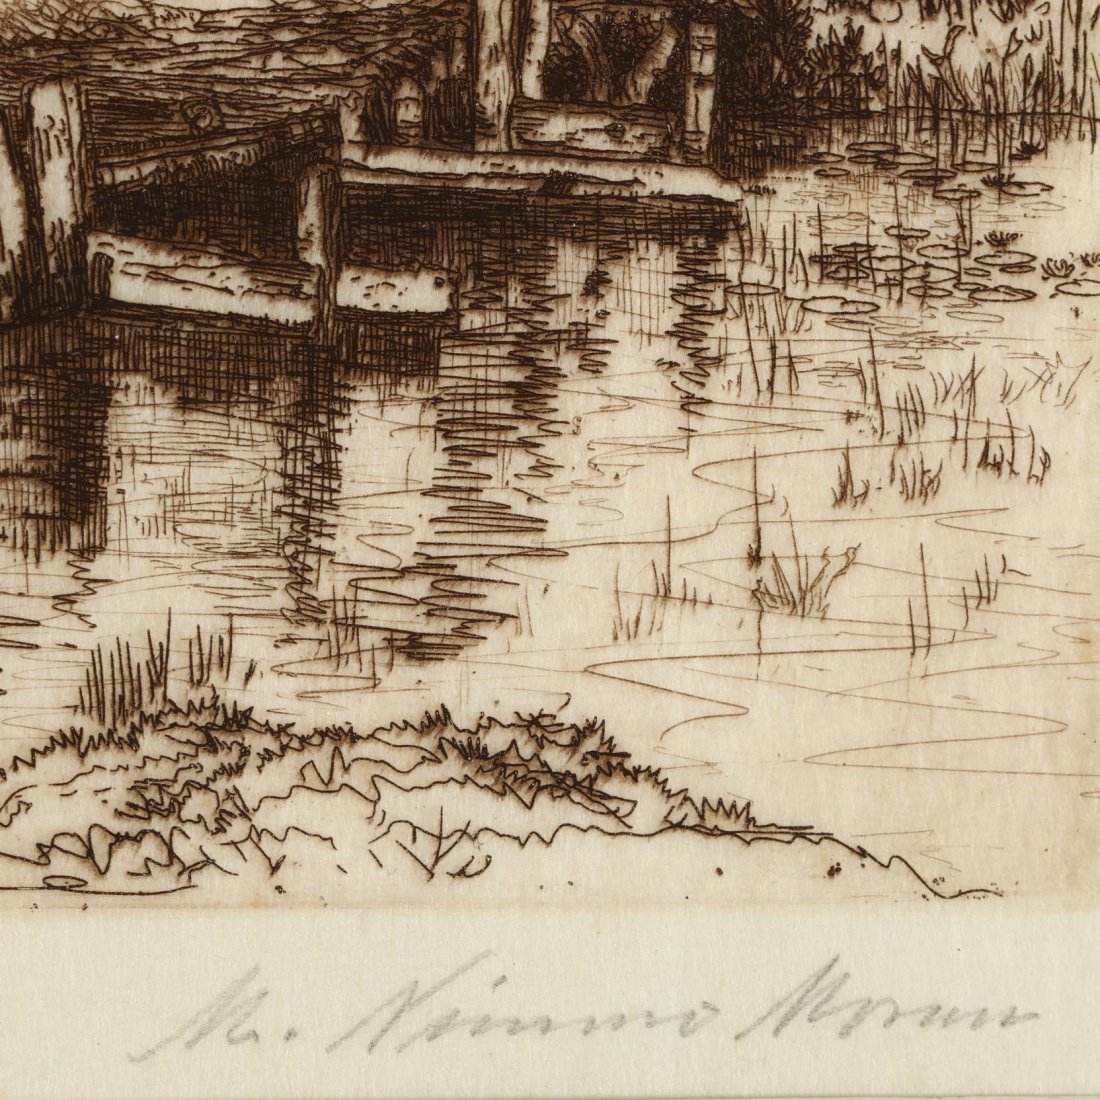 Two 19th-Century Landscapes - Moran and Harpignies - 3